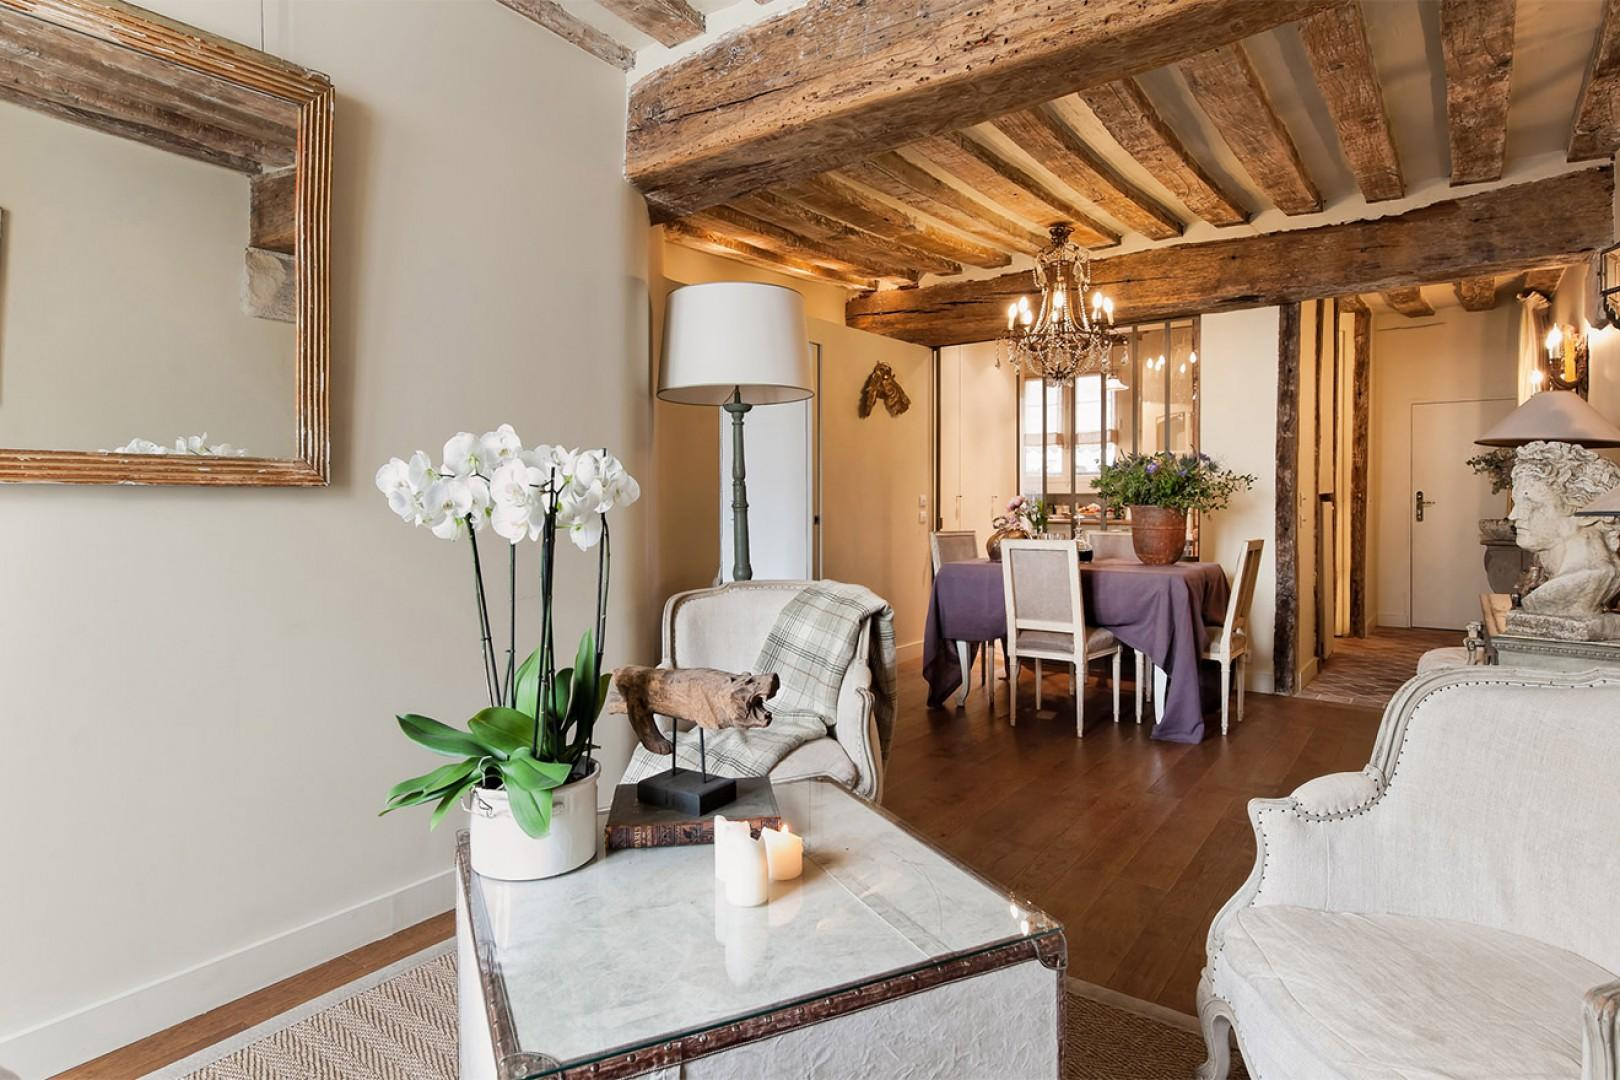 The stunning apartment features original elements, such as wooden beams.